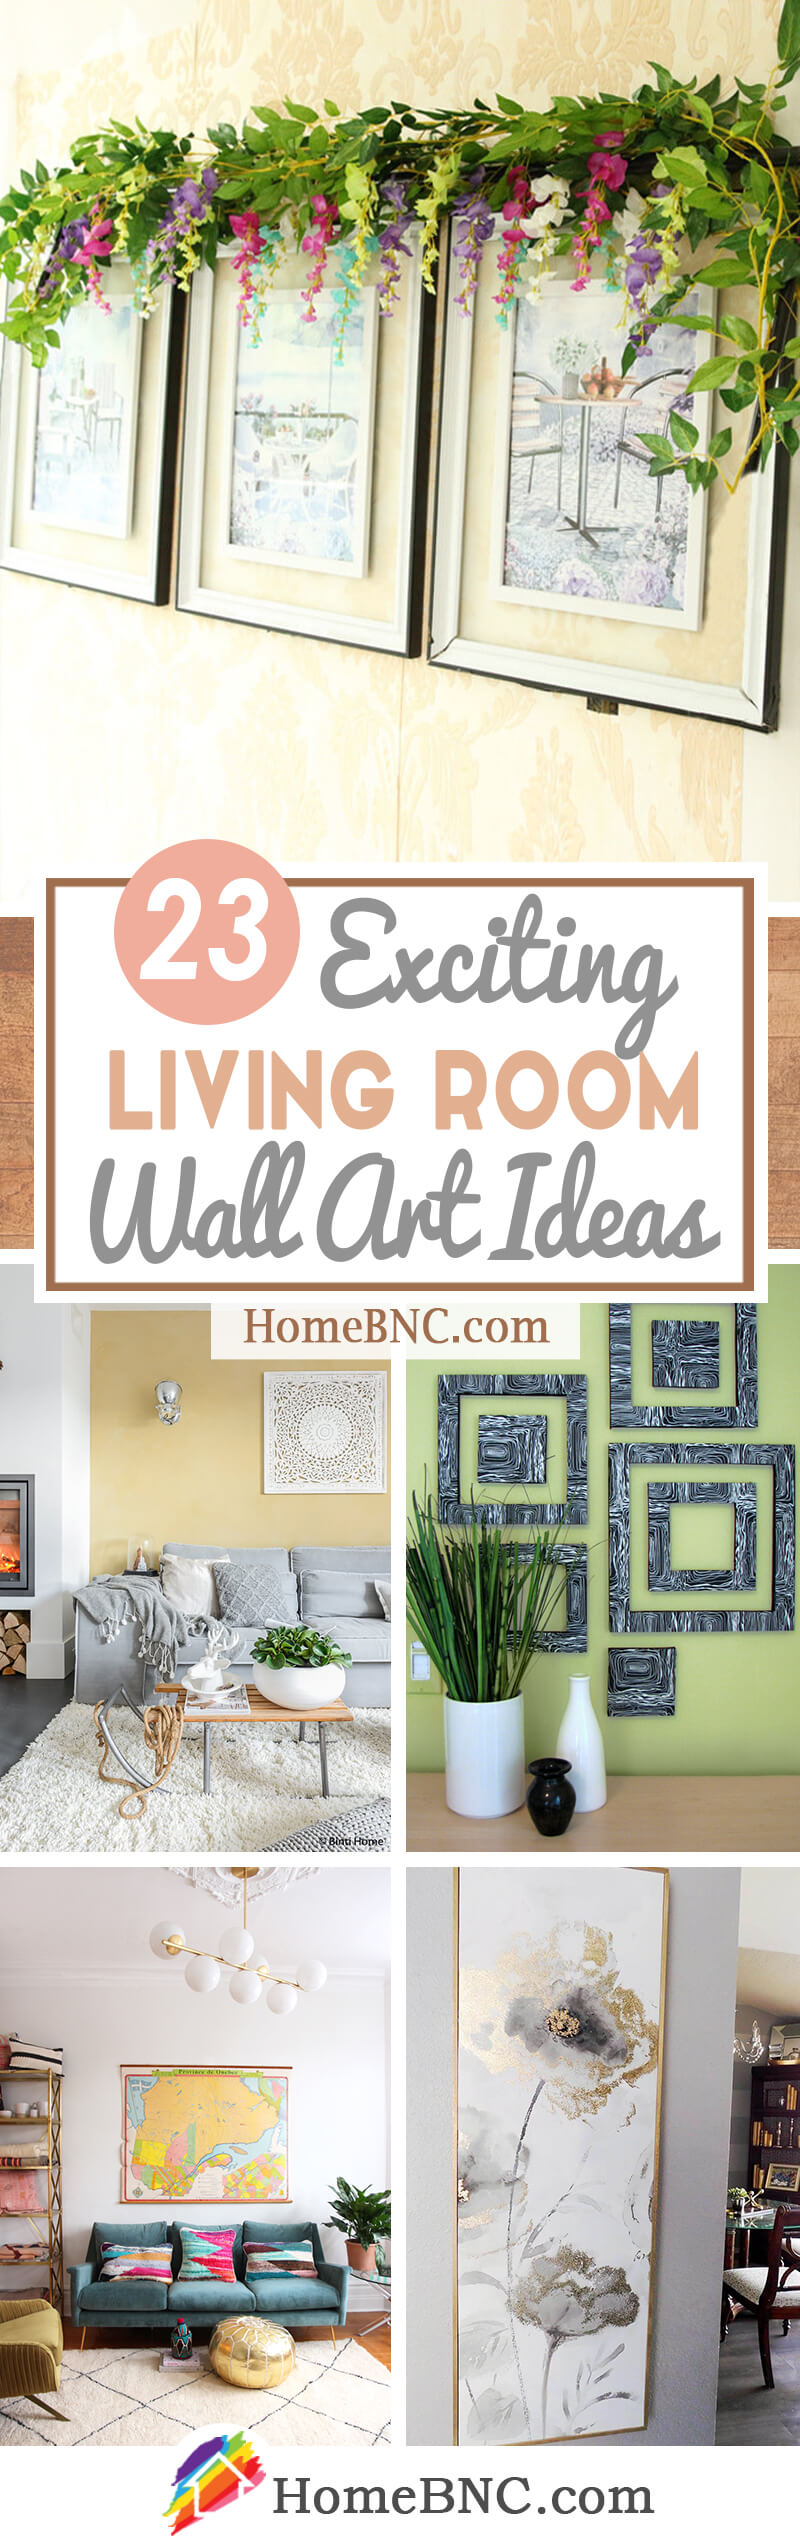 23 Best Living Room Wall Art Ideas And Designs For 2020